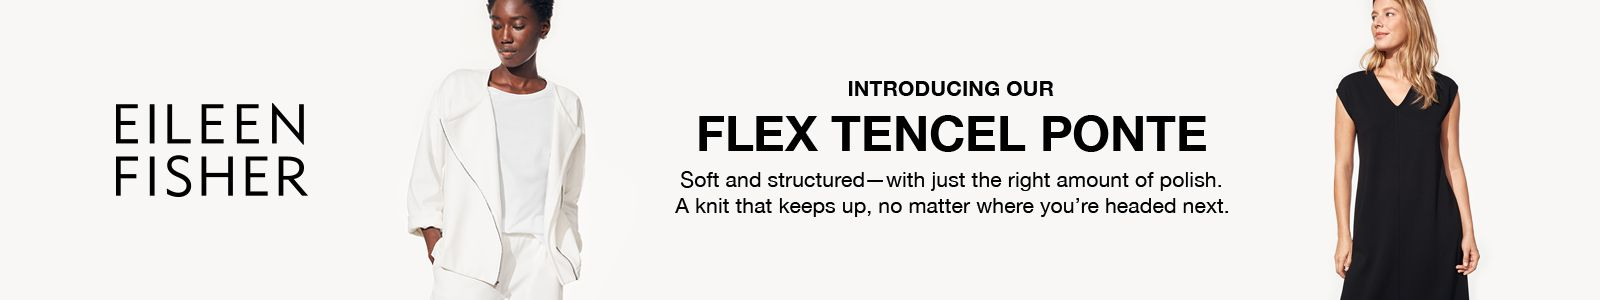 Eileen Fisher, Introducing Our, Flex Tencel Ponte, Soft and structured- with just the right amount of polish, A knit that keeps up, no matter where you,re headed next